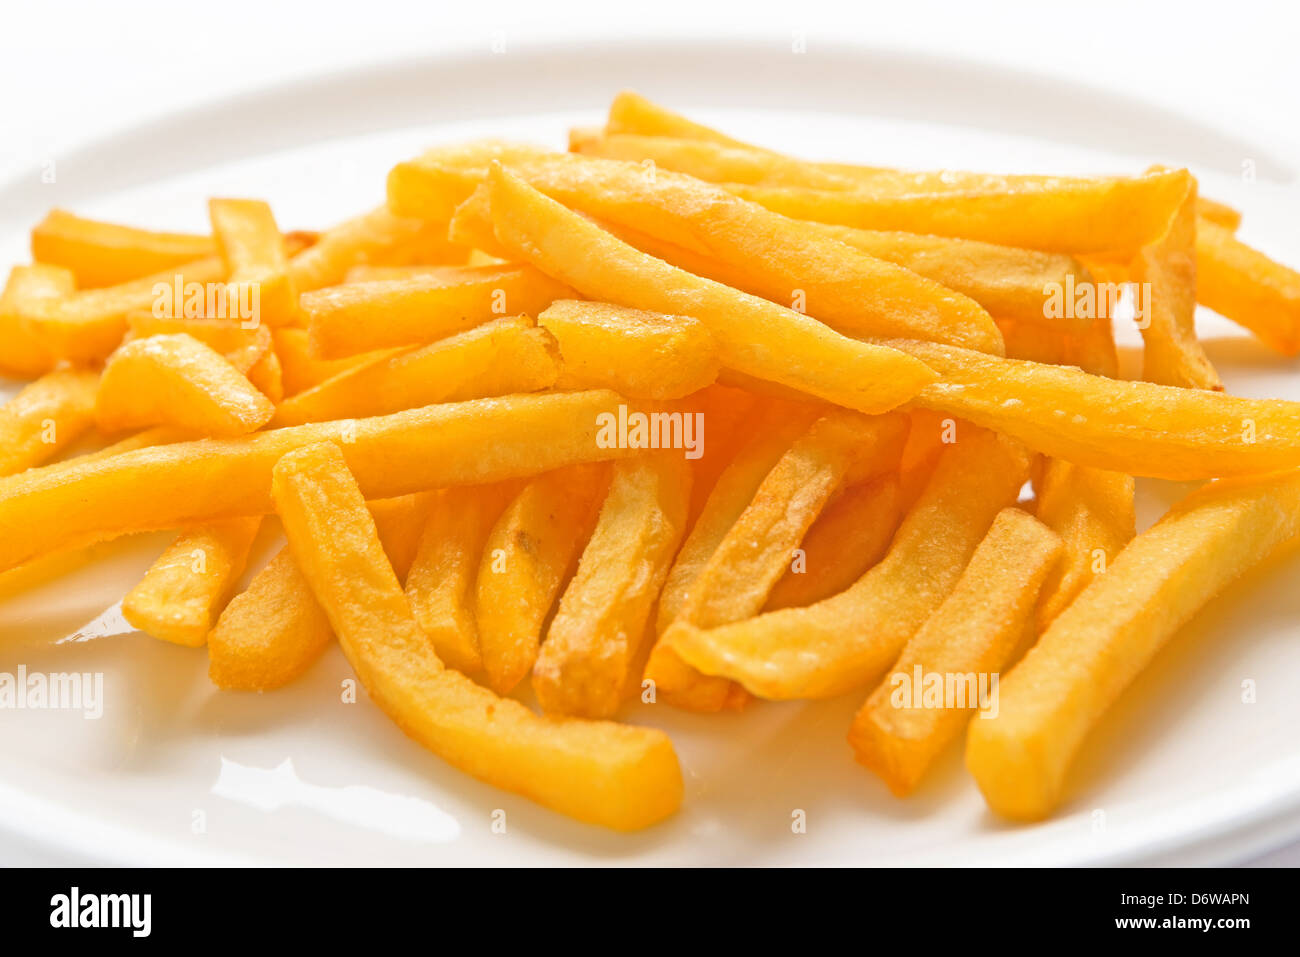 French fries served on white flat plate. - Stock Image